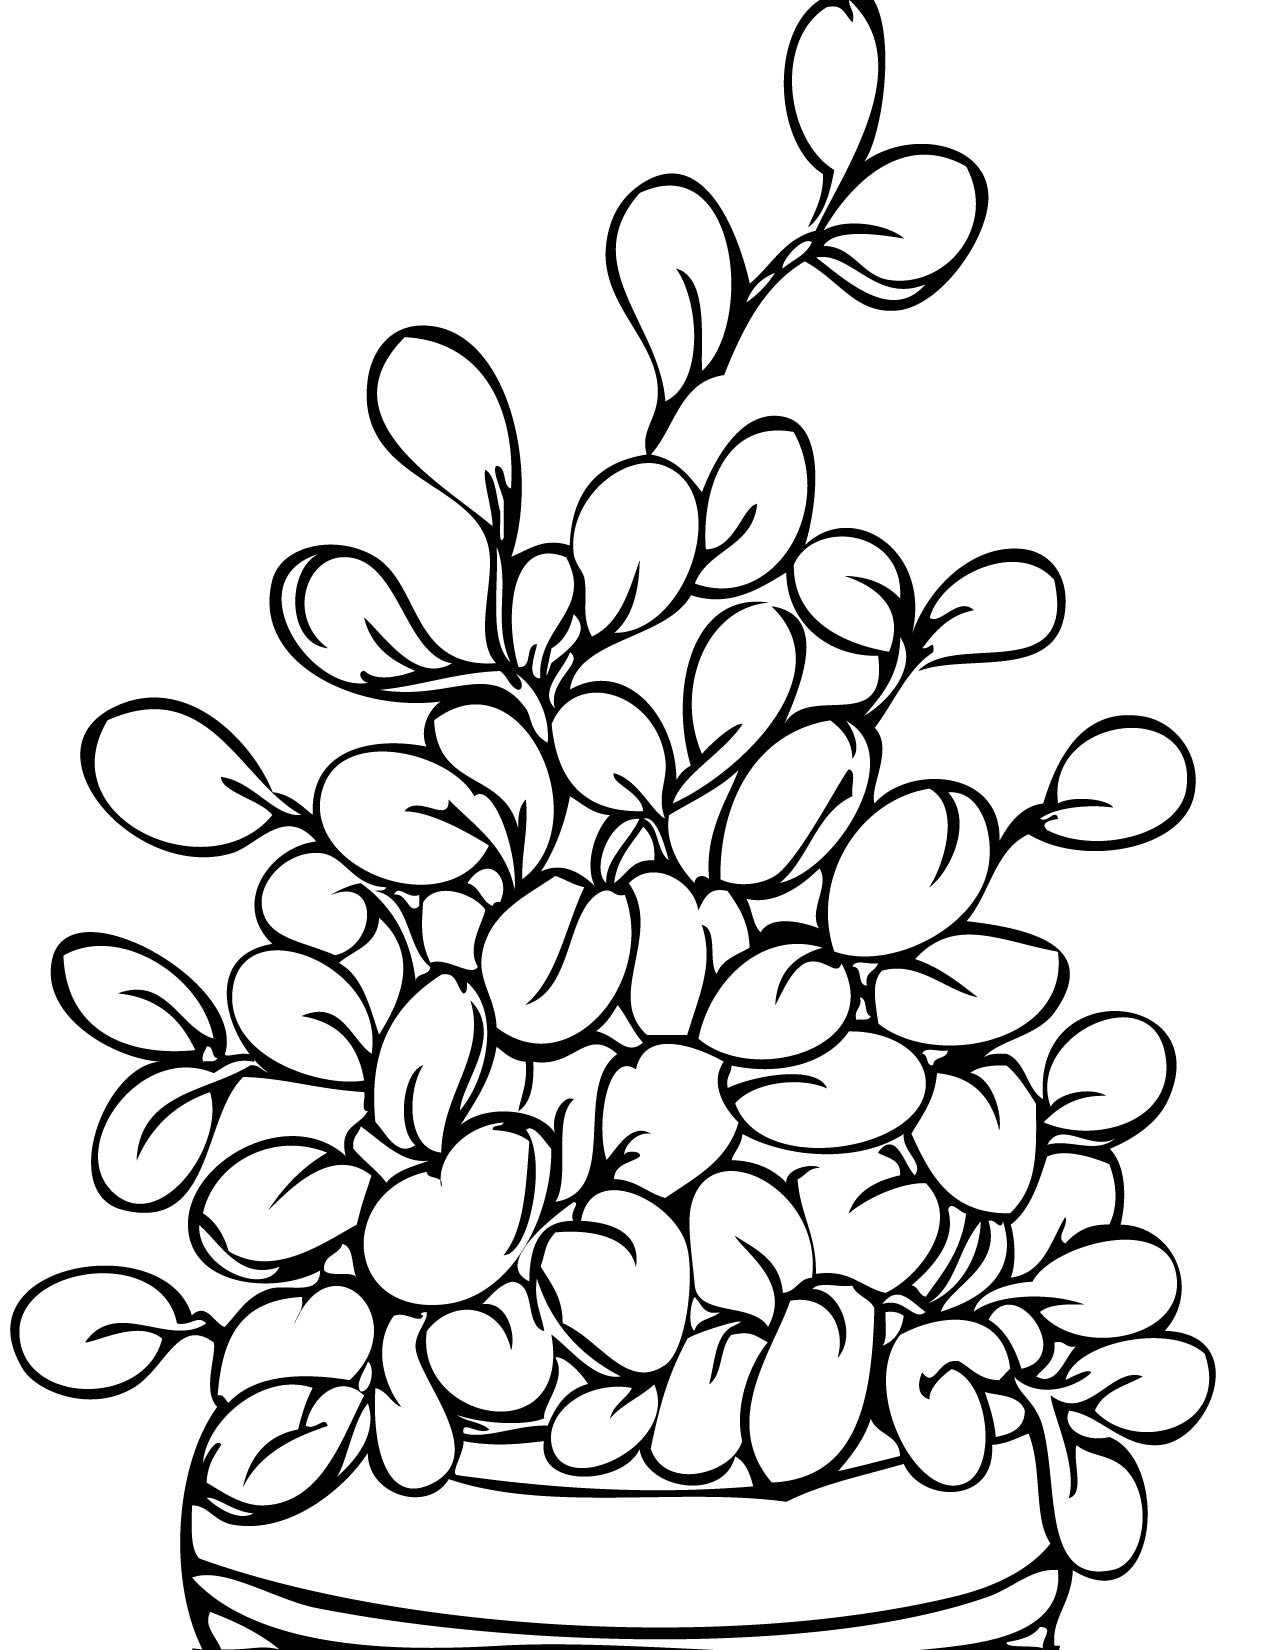 plants coloring pages - photo#14